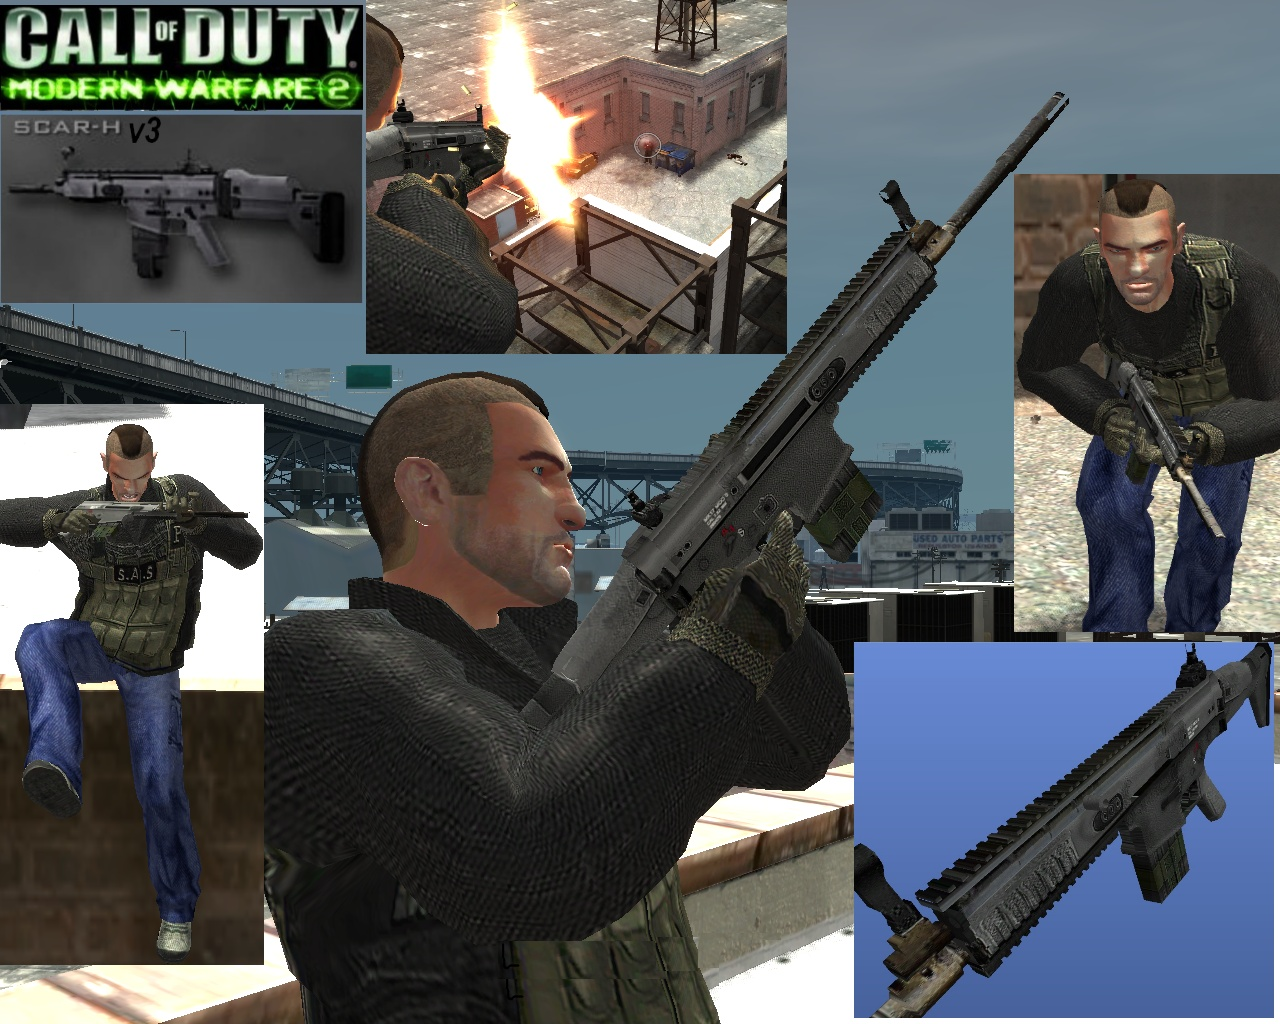 Call of duty modern warfare 2 gun -  Call Of Duty Modern Warfare 2 Scar H V3 New Textures From Folder And Open Sparkiv And Replace W_m4 Wtd In Pc Models Cdimages Weapons Img 5